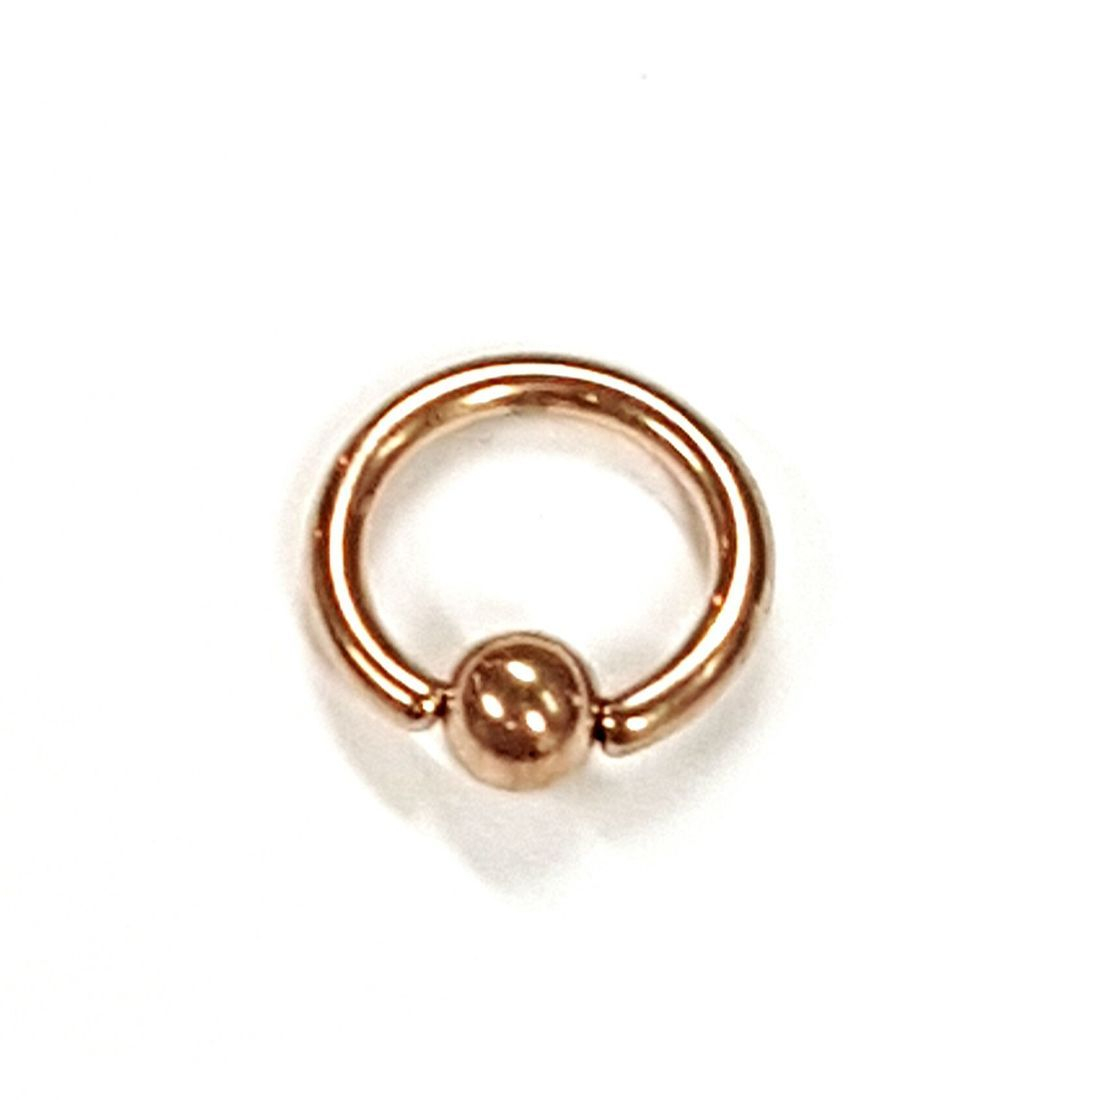 1.2mm x 6mm Rose Gold Ball Closure Ring   available at Kazbah online and our Leicester City Centre Shop